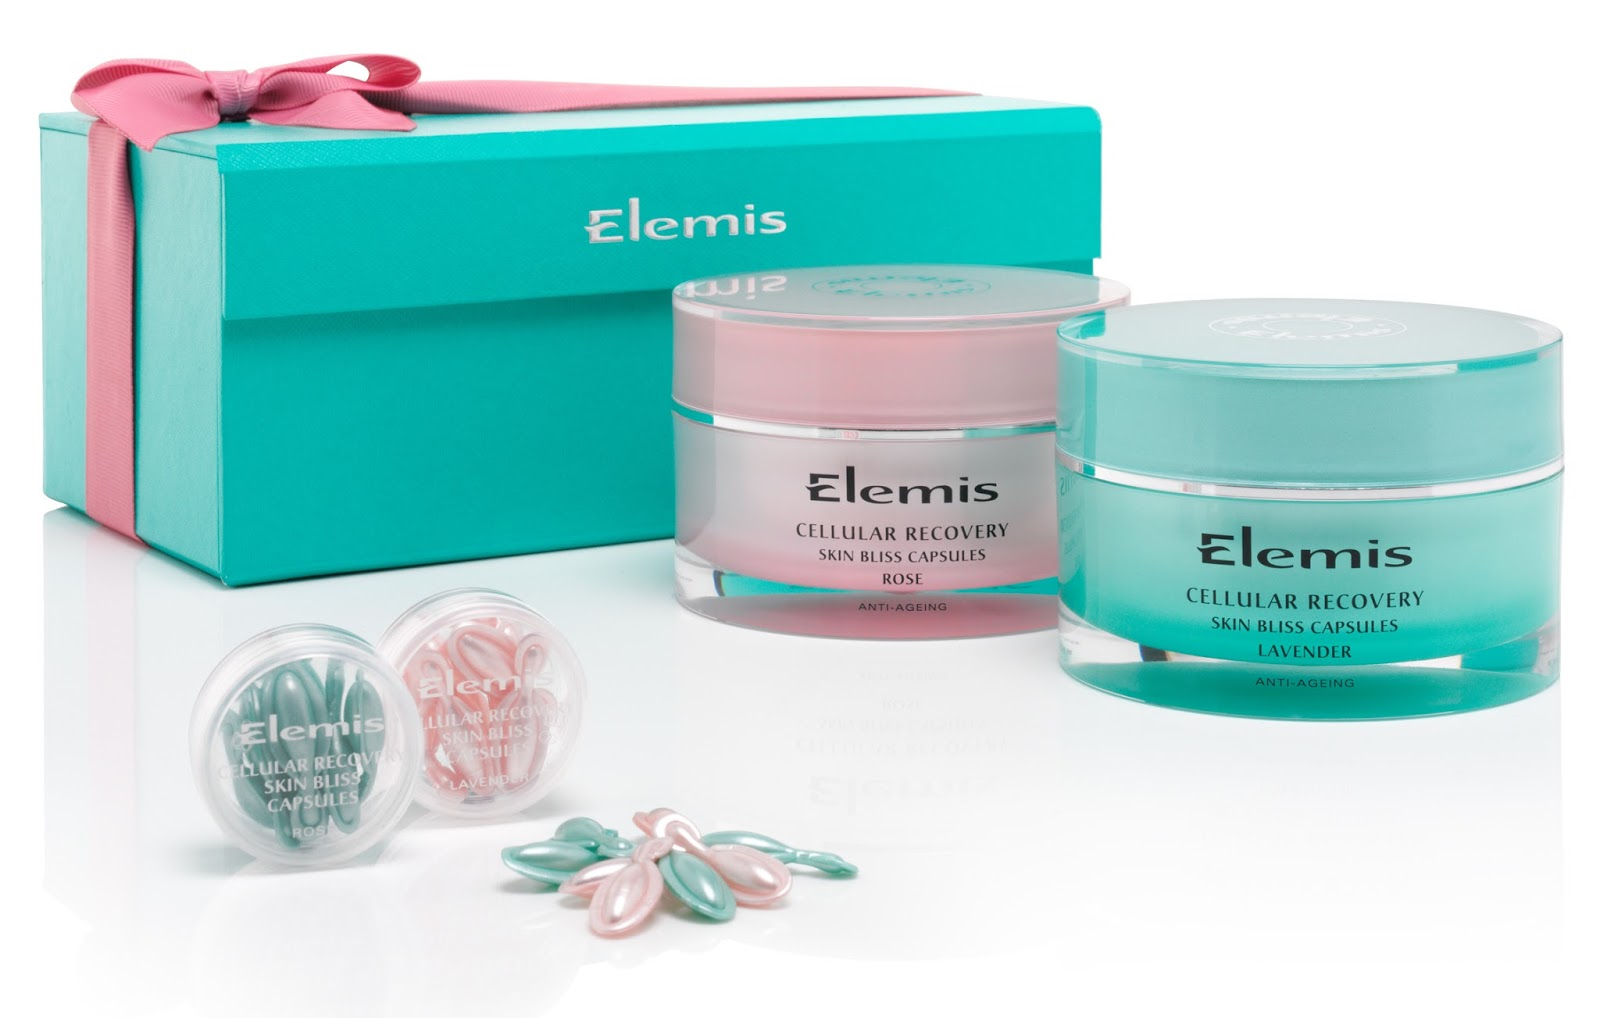 Elemis Cellular Recovery Skin Bliss Capsules Limited Edition Collection